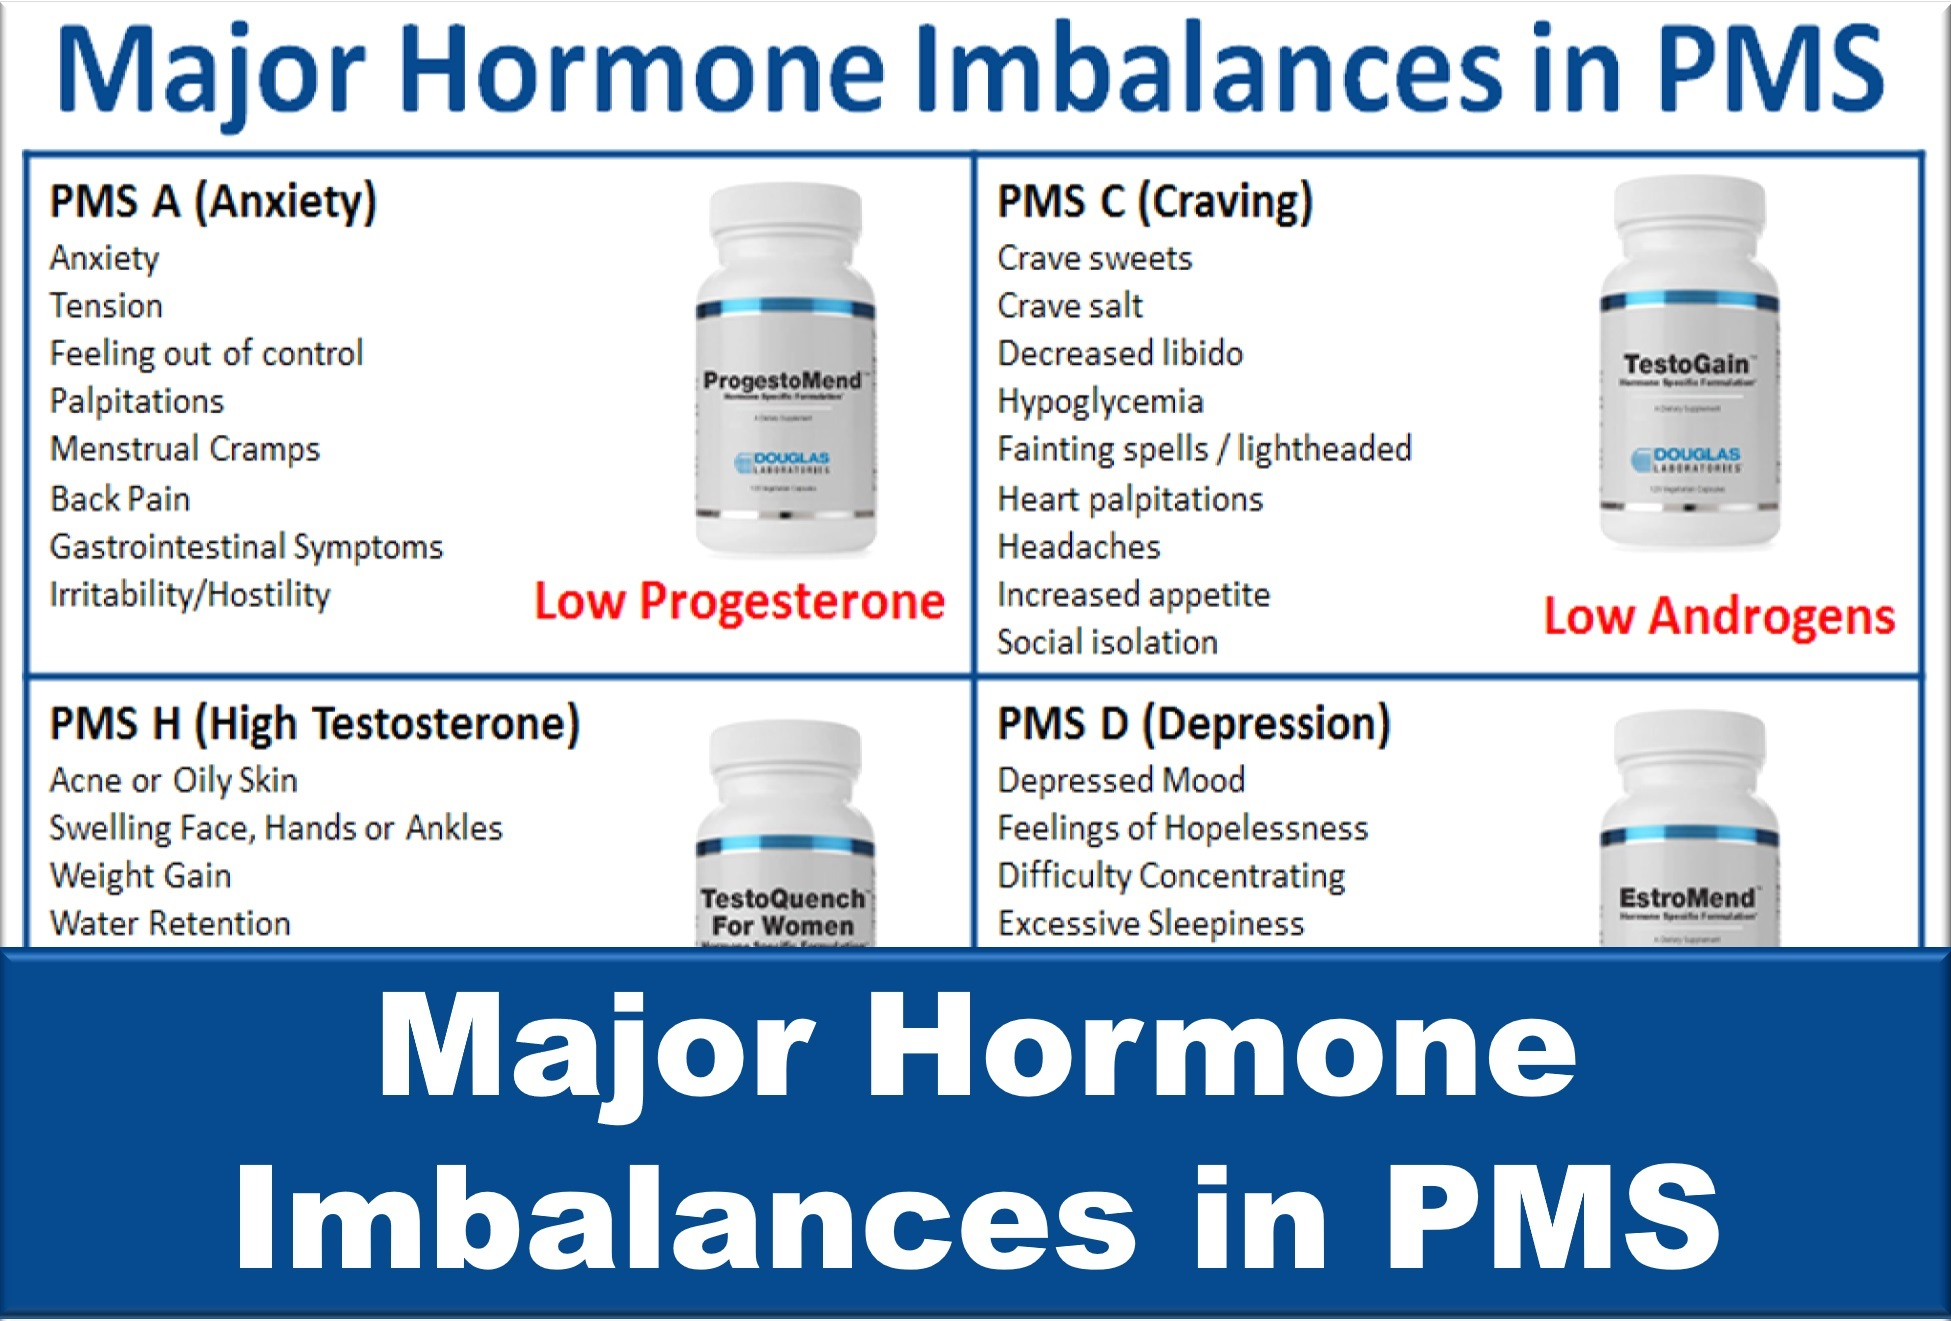 Major Hormone Imbalances in PMS